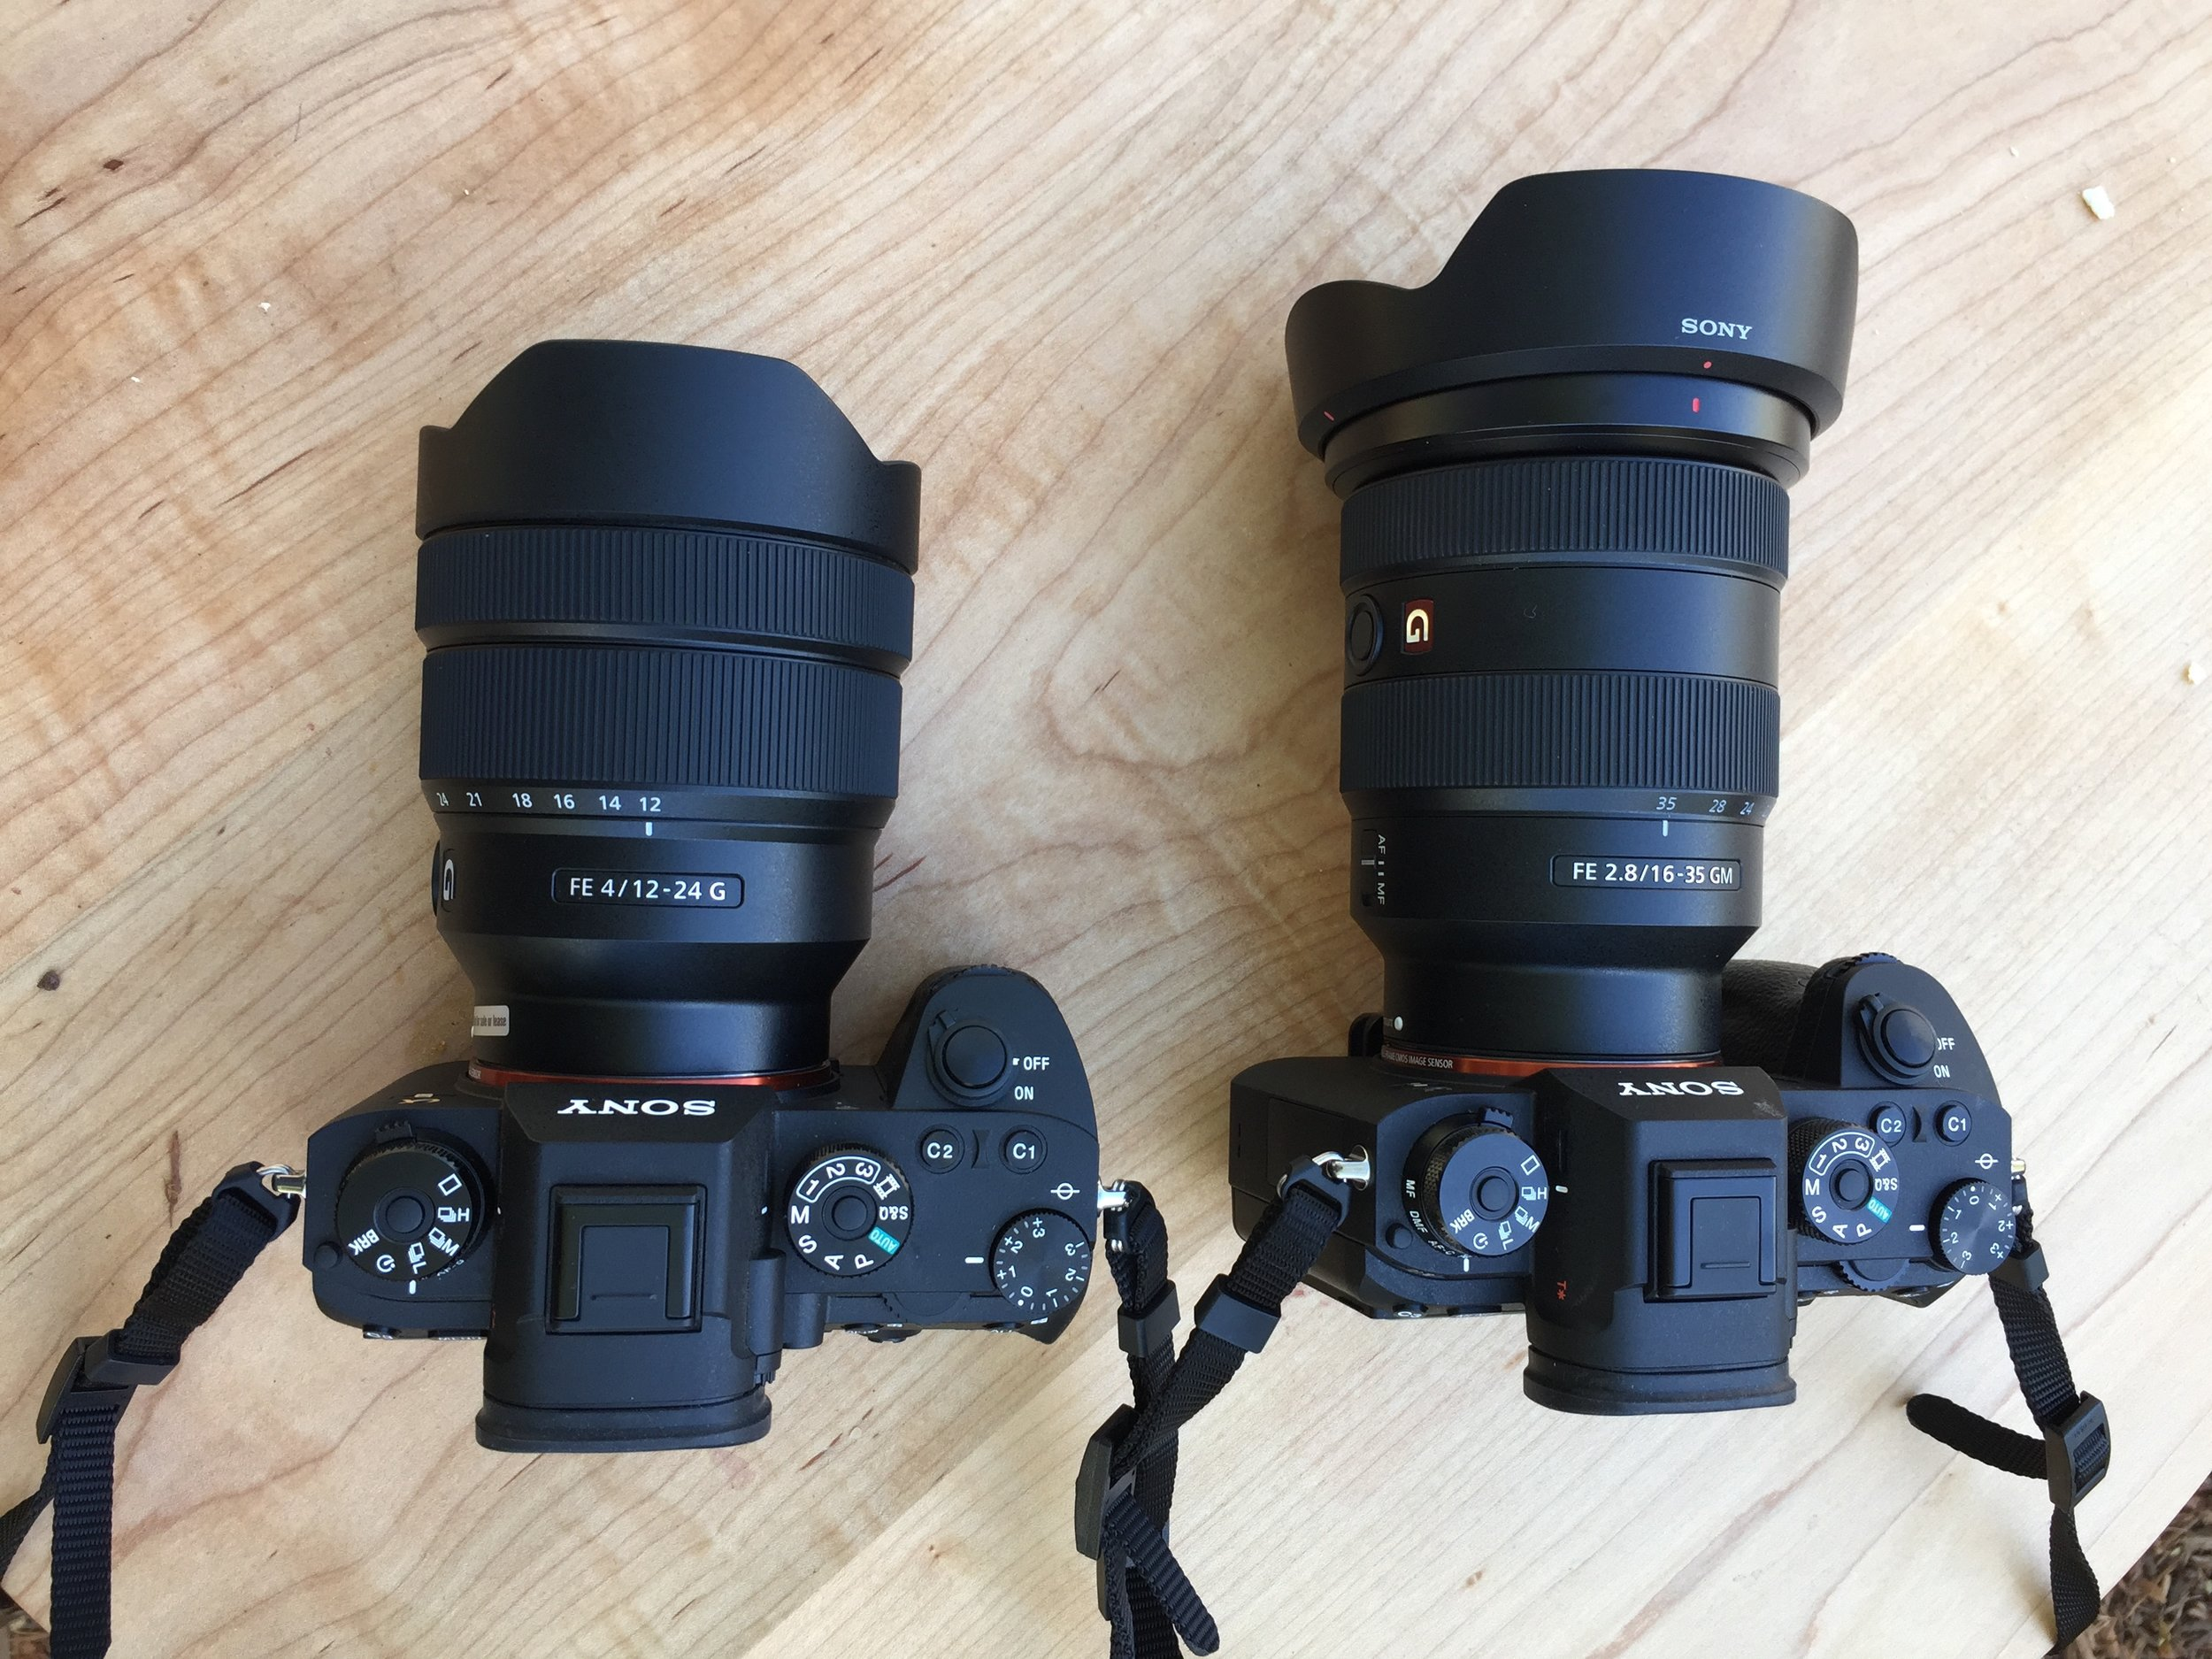 Sony A9s with the new  12-24mm f4  and  16-35mm f2.8